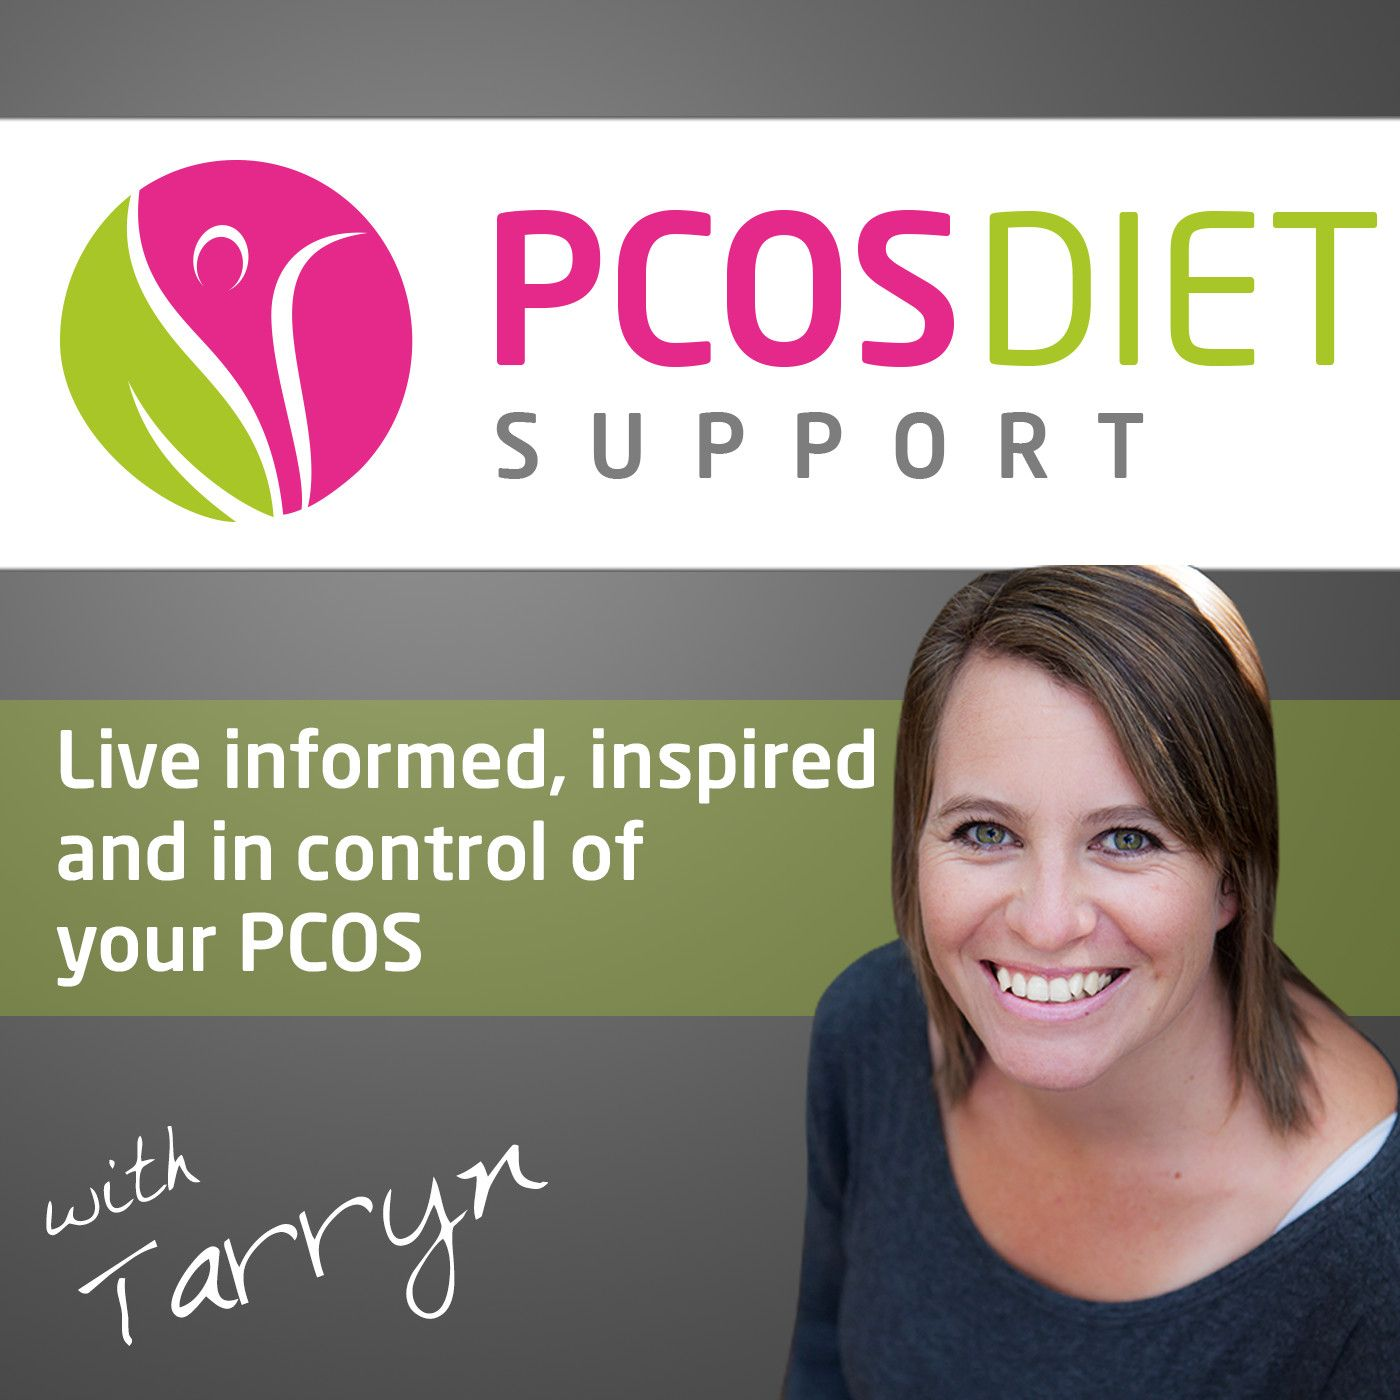 007: Let's talk about Hair and PCOS